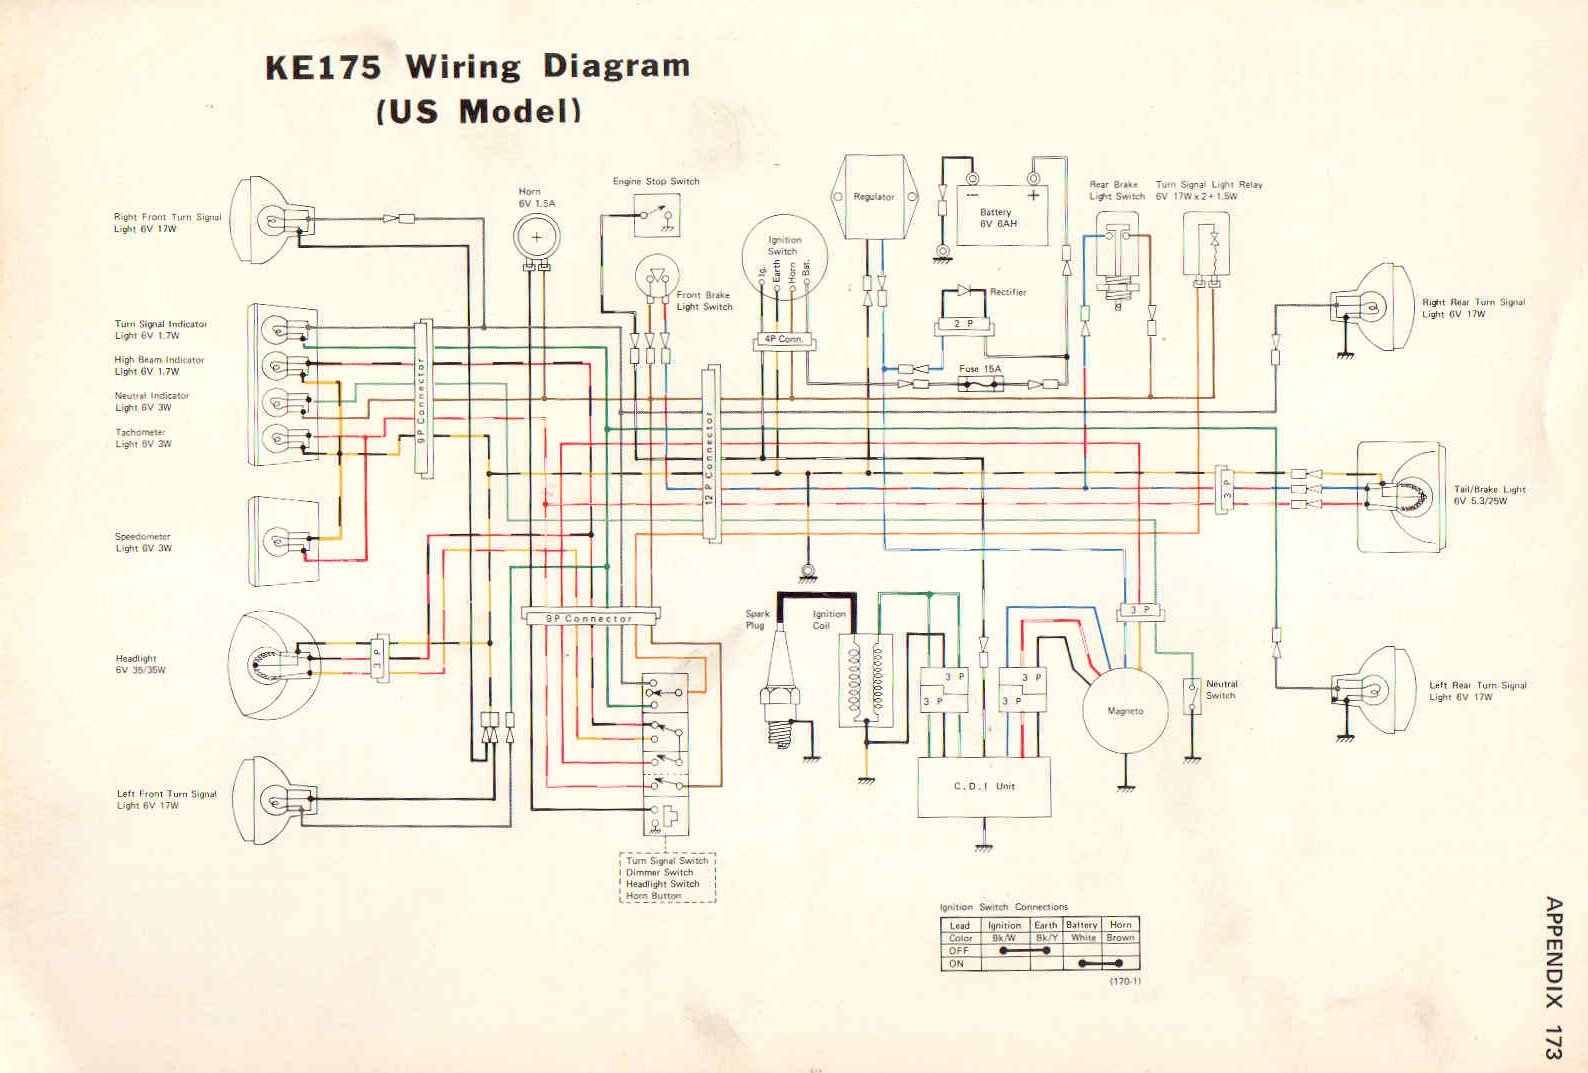 76 77 78 KE175 Wiring Diagram 76 77 78 ke175 wiring diagram 1978 yamaha dt 175 wiring diagram at cos-gaming.co